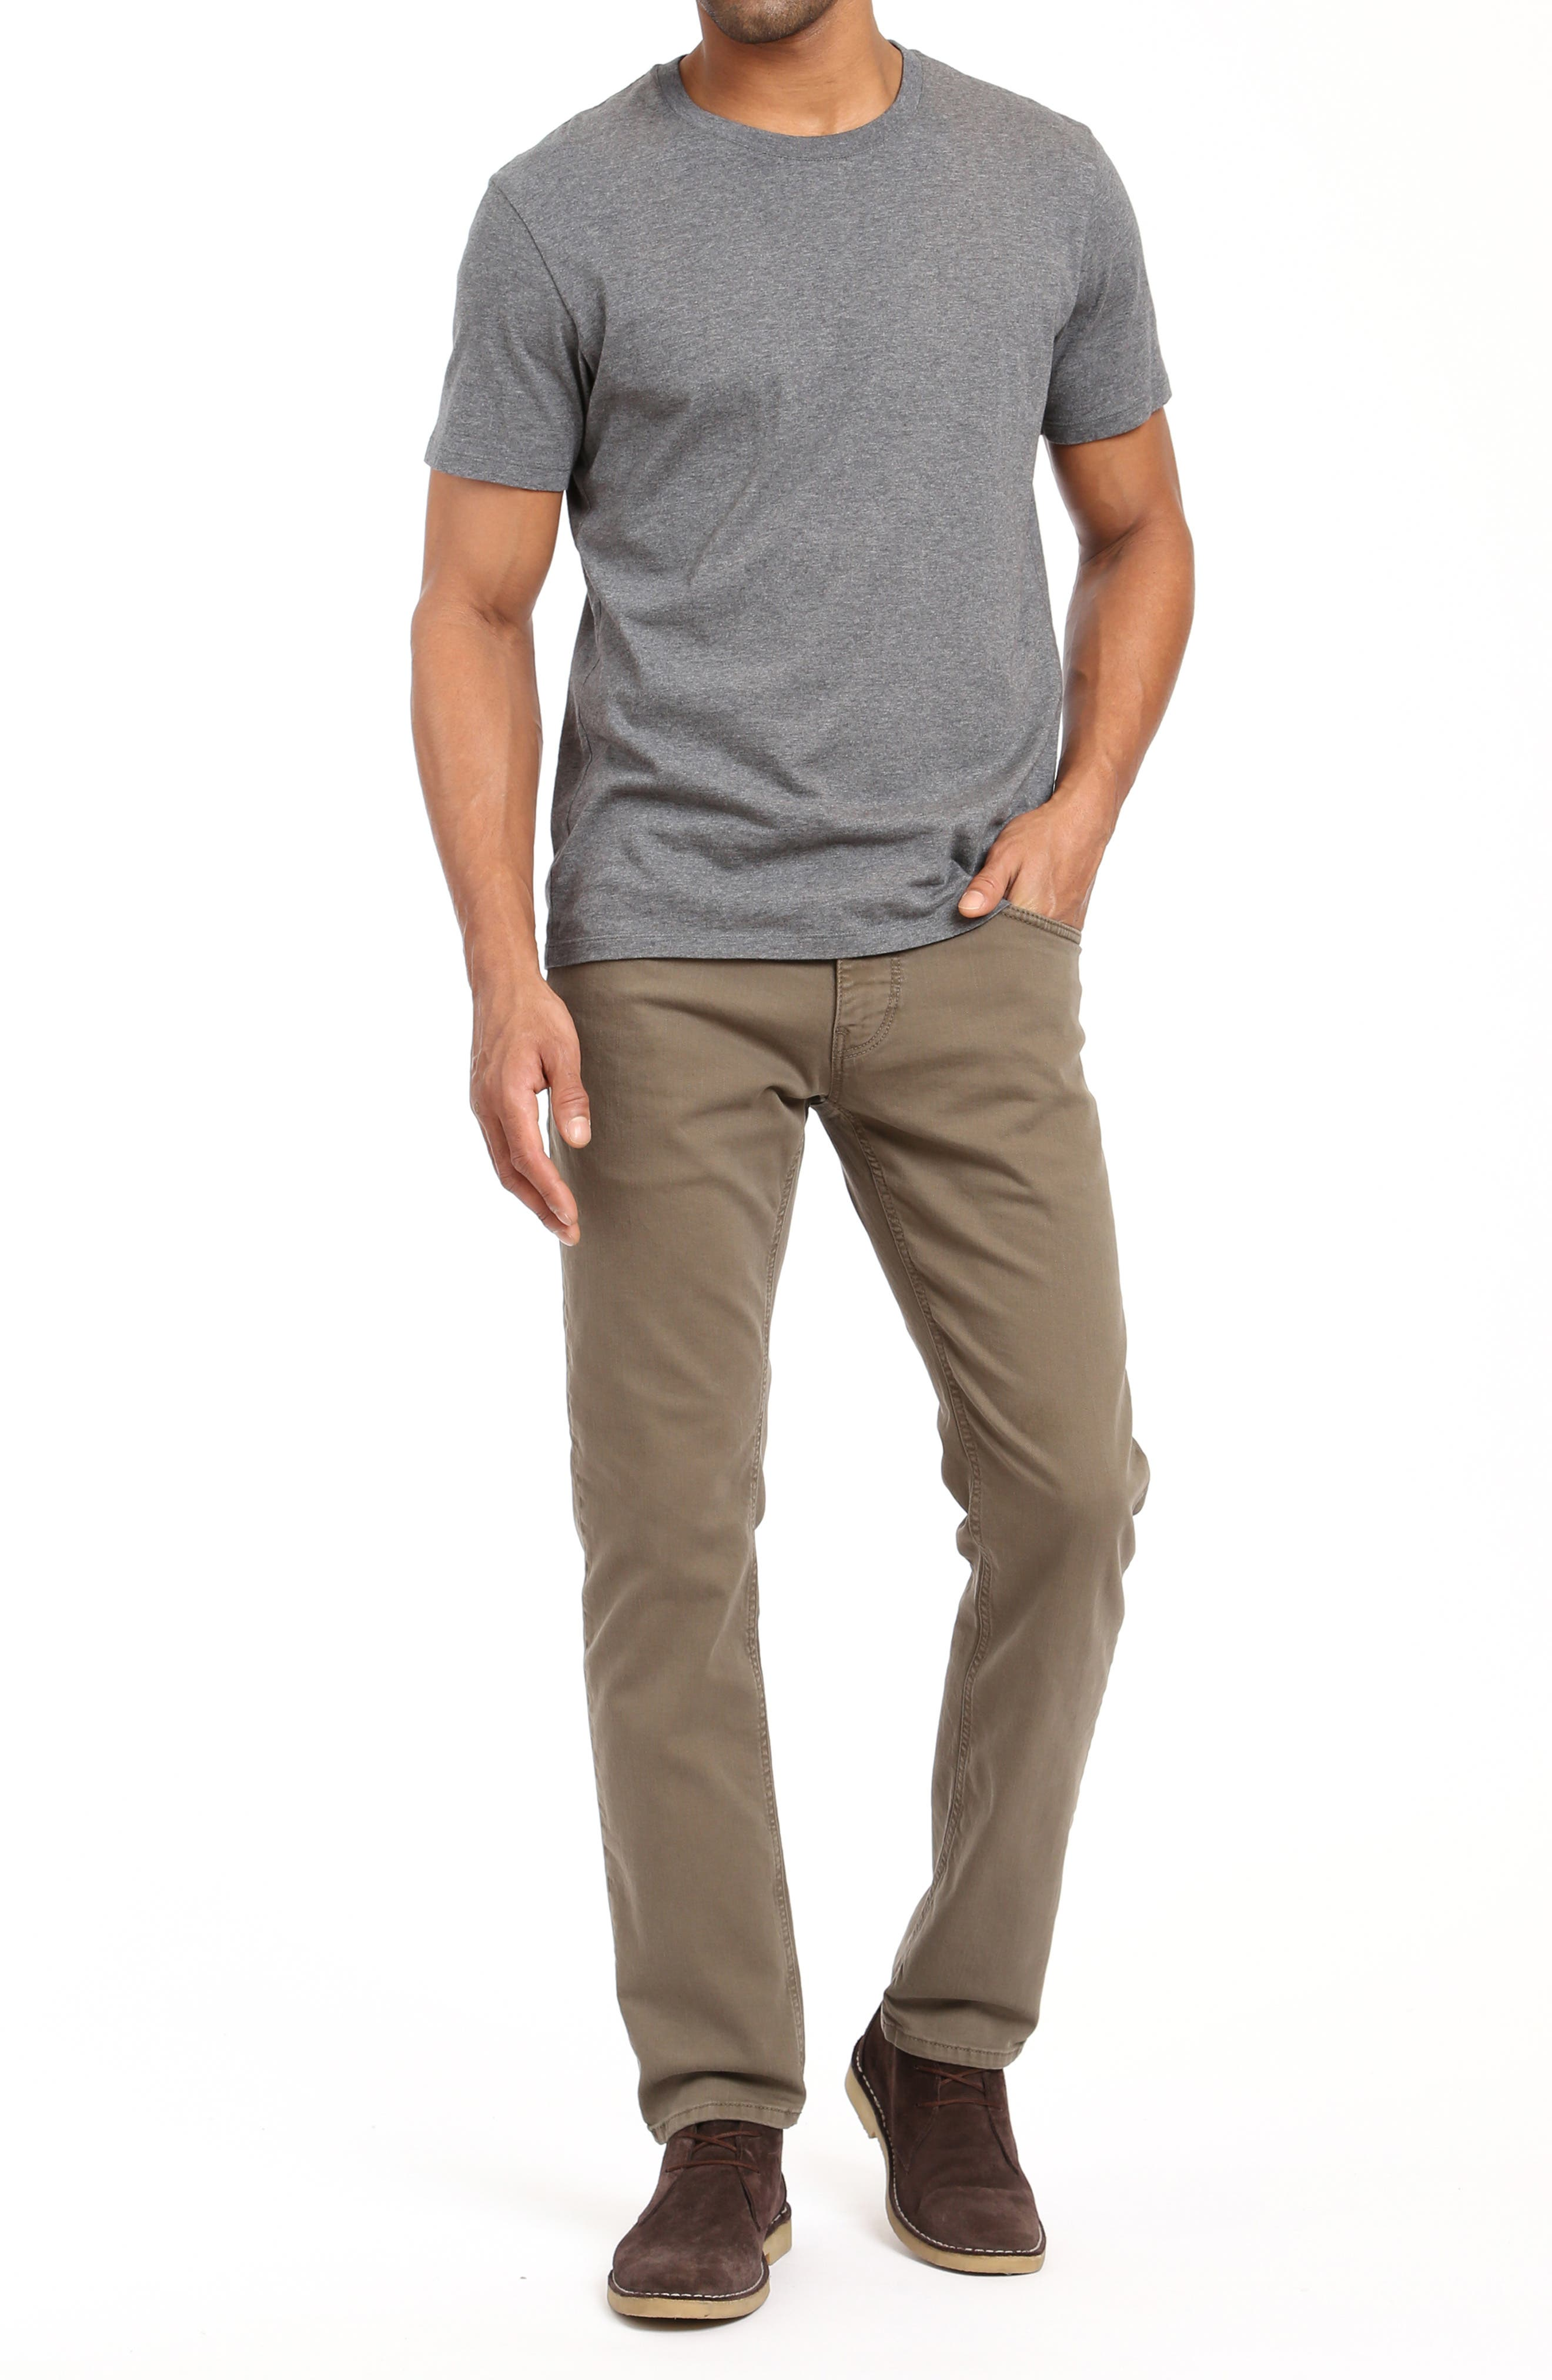 Zach Straight Leg Jeans,                             Alternate thumbnail 4, color,                             KHAKI WASHED COMFORT